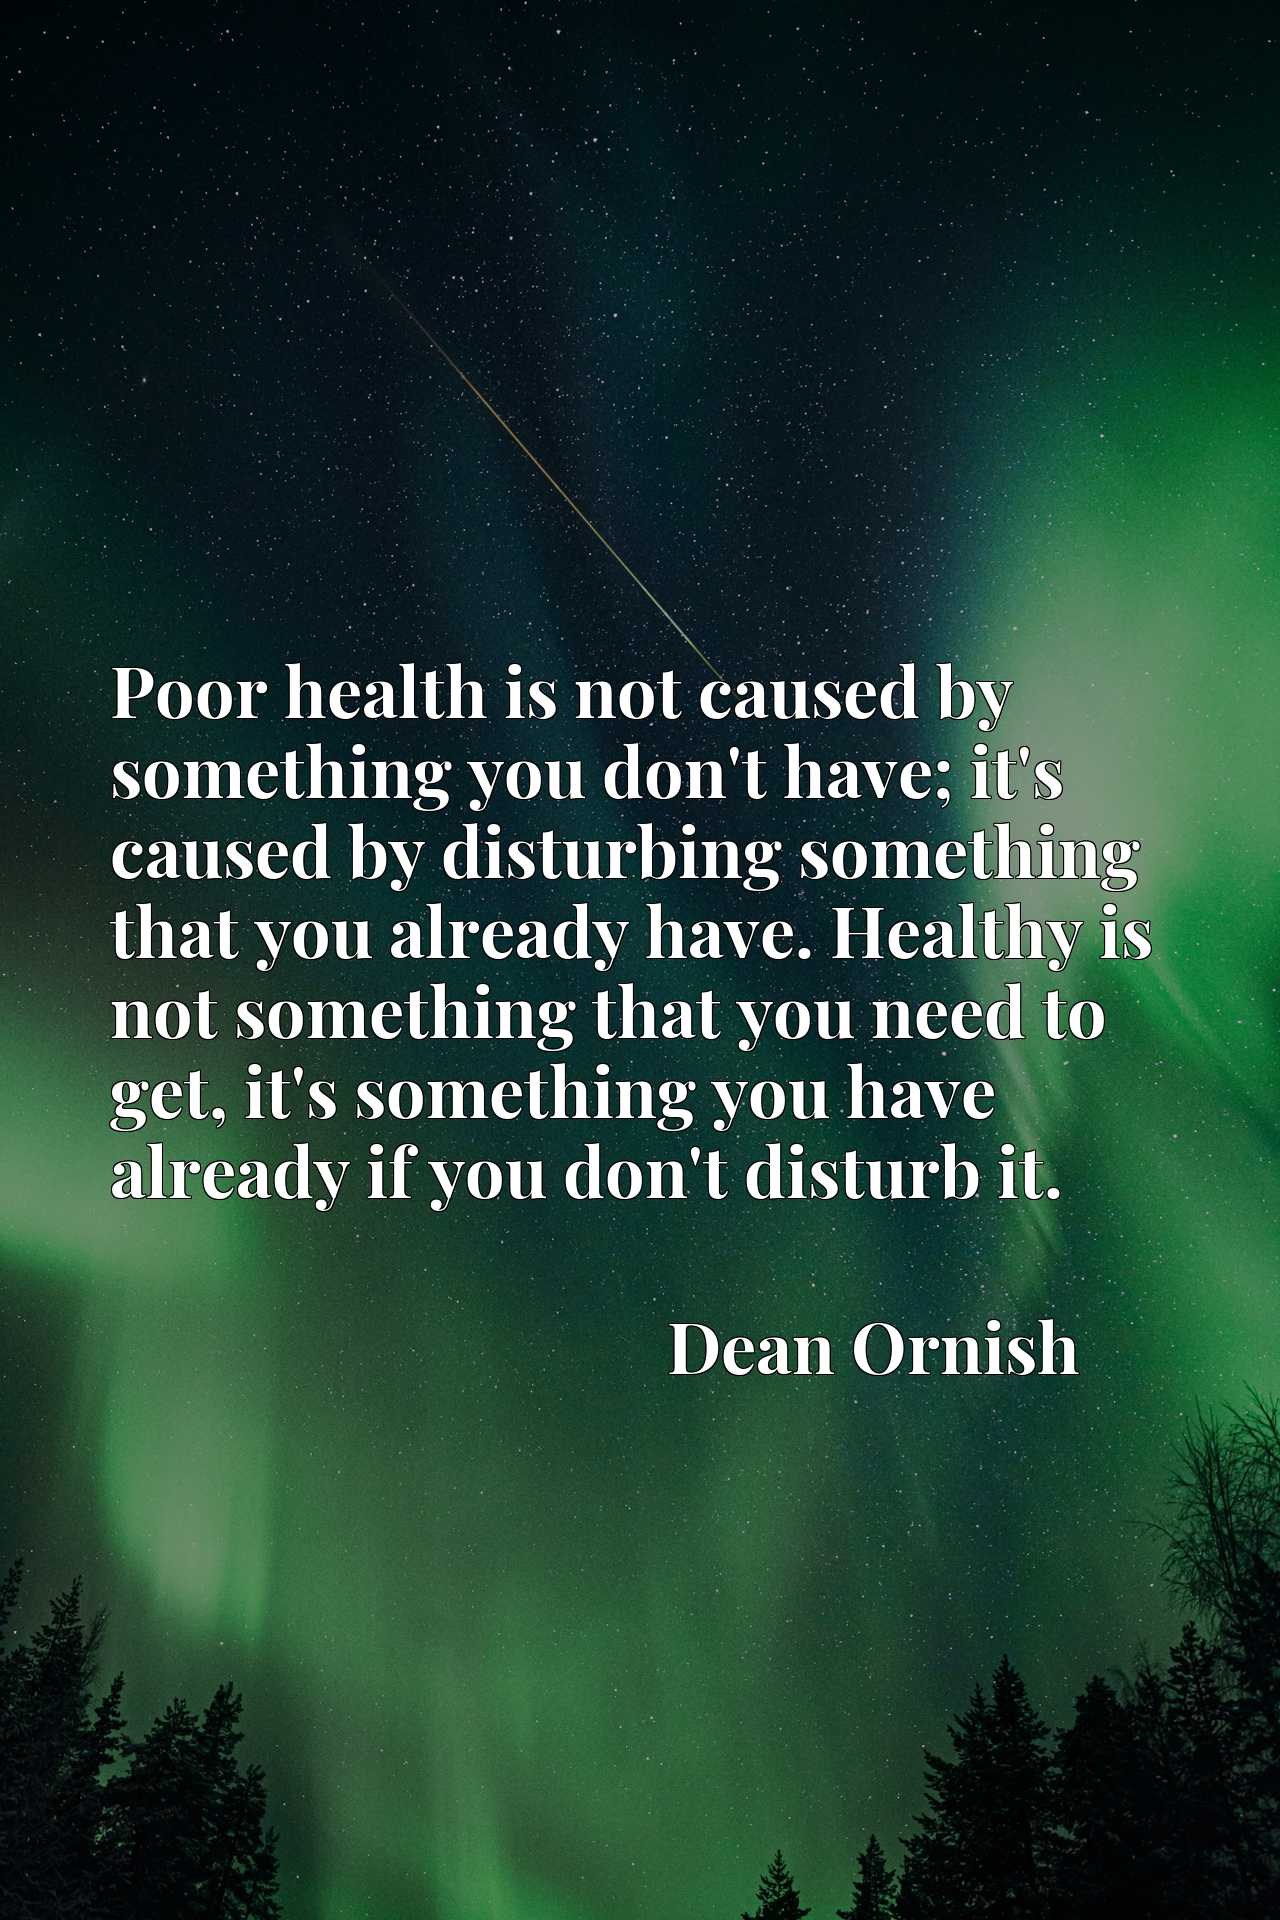 Poor health is not caused by something you don't have; it's caused by disturbing something that you already have. Healthy is not something that you need to get, it's something you have already if you don't disturb it.